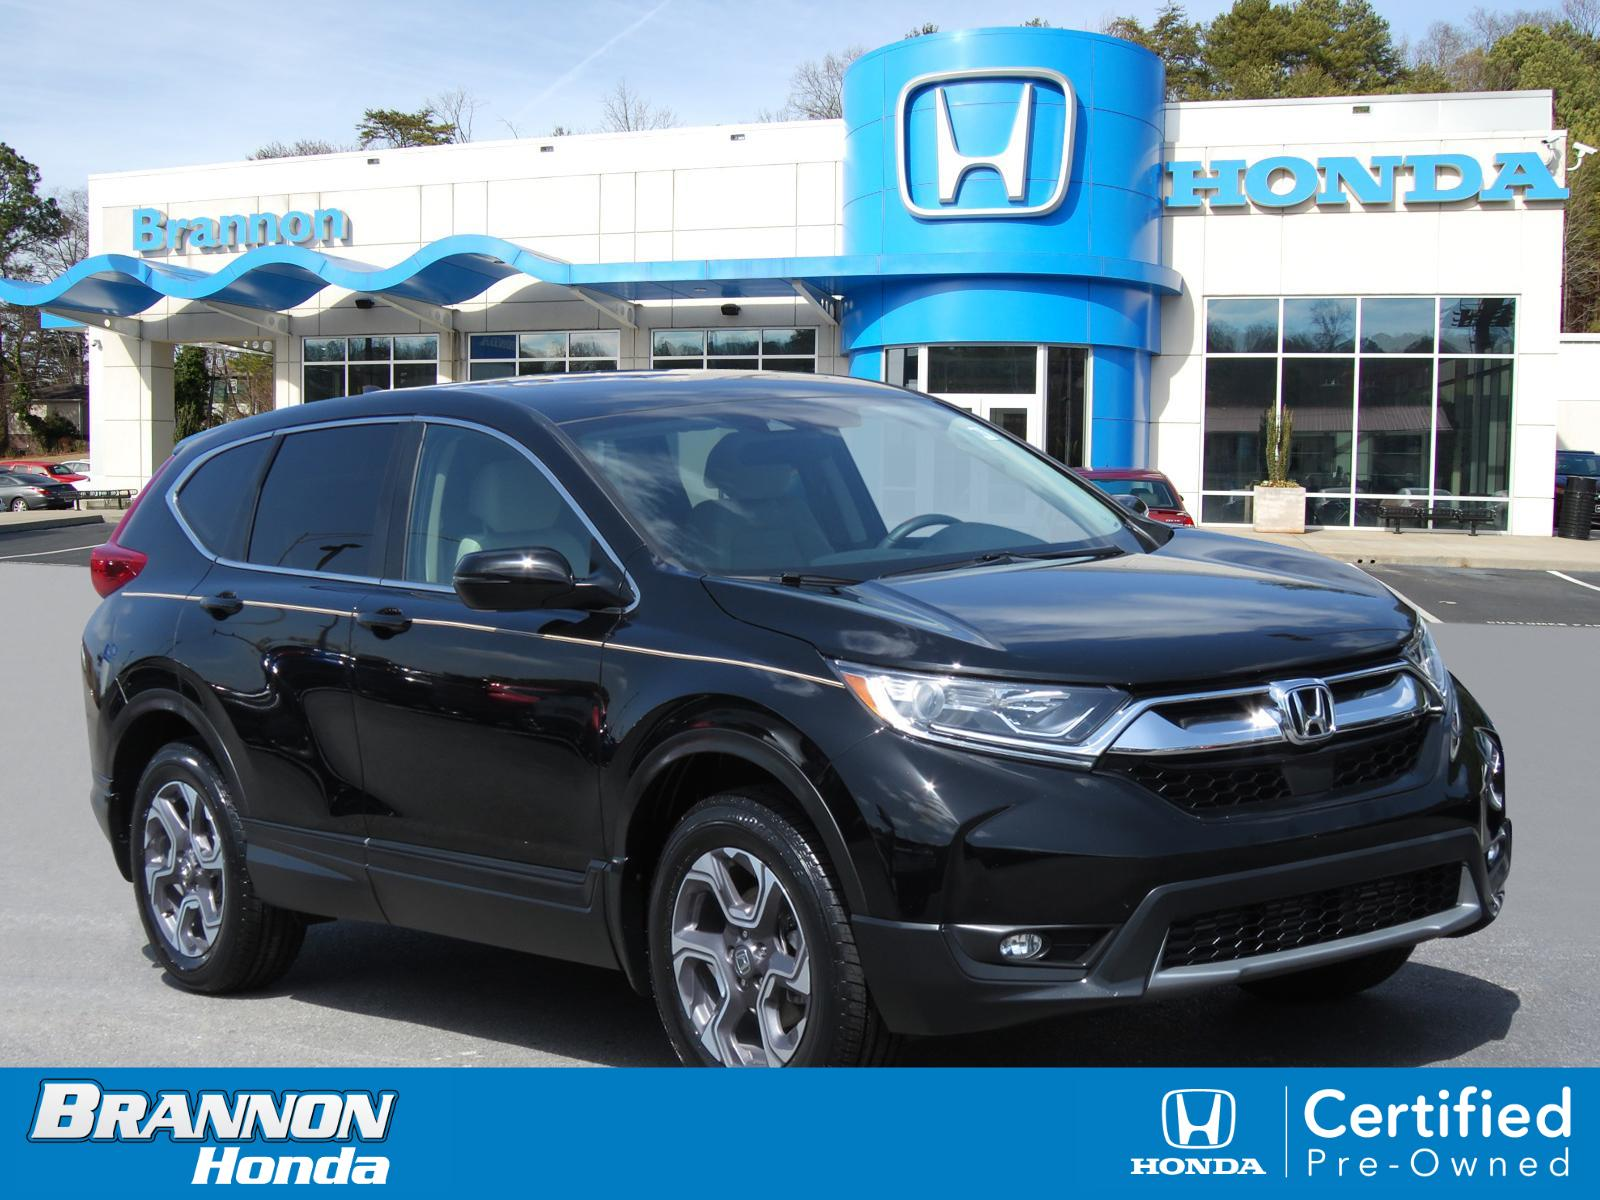 Certified Pre-Owned 2018 Honda CR-V EX AWD